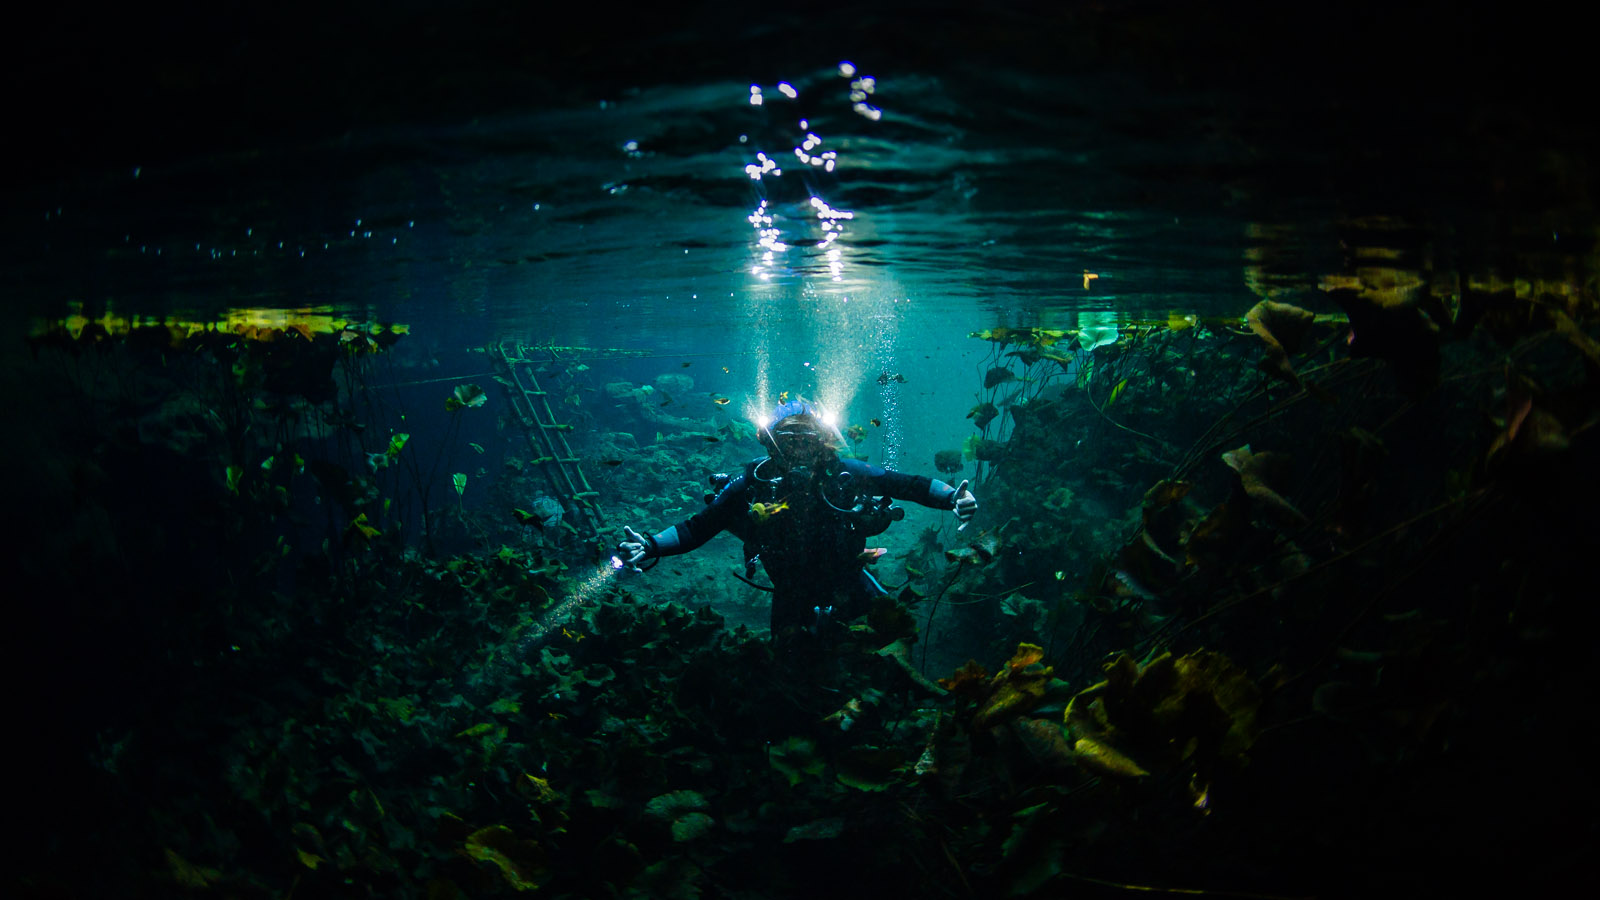 underwater photographer, dive, diving, cave, cavediving, scubadiving, cenote, mexico, tulum, underwaterphotography, underwaterphotographer, undervattensfoto, undervattensfotograf, adventurephotography, adventurephotographer, äventyrsfoto, äventyrsfotograf, mexiko, anhede